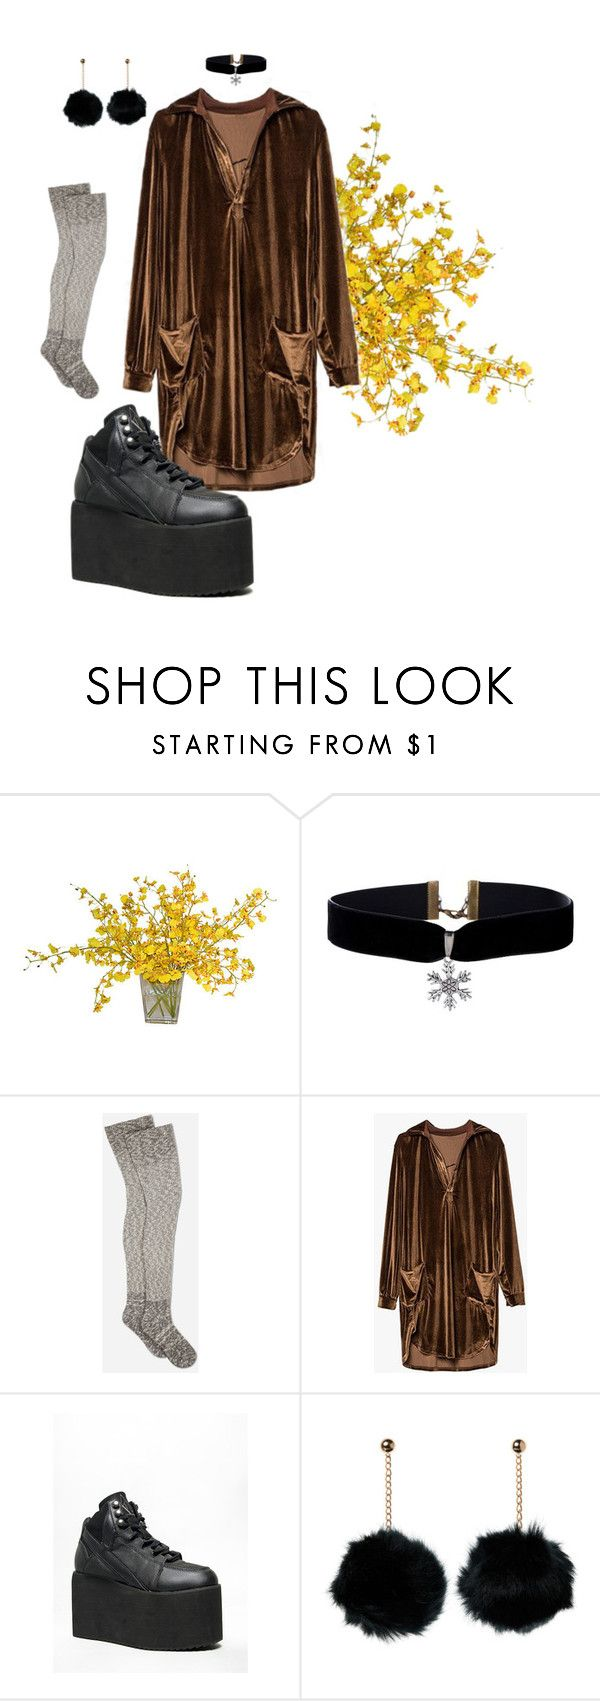 """""""VELVET CRUSH"""" by azurcalypso ❤ liked on Polyvore featuring The French Bee, UGG and Y.R.U."""